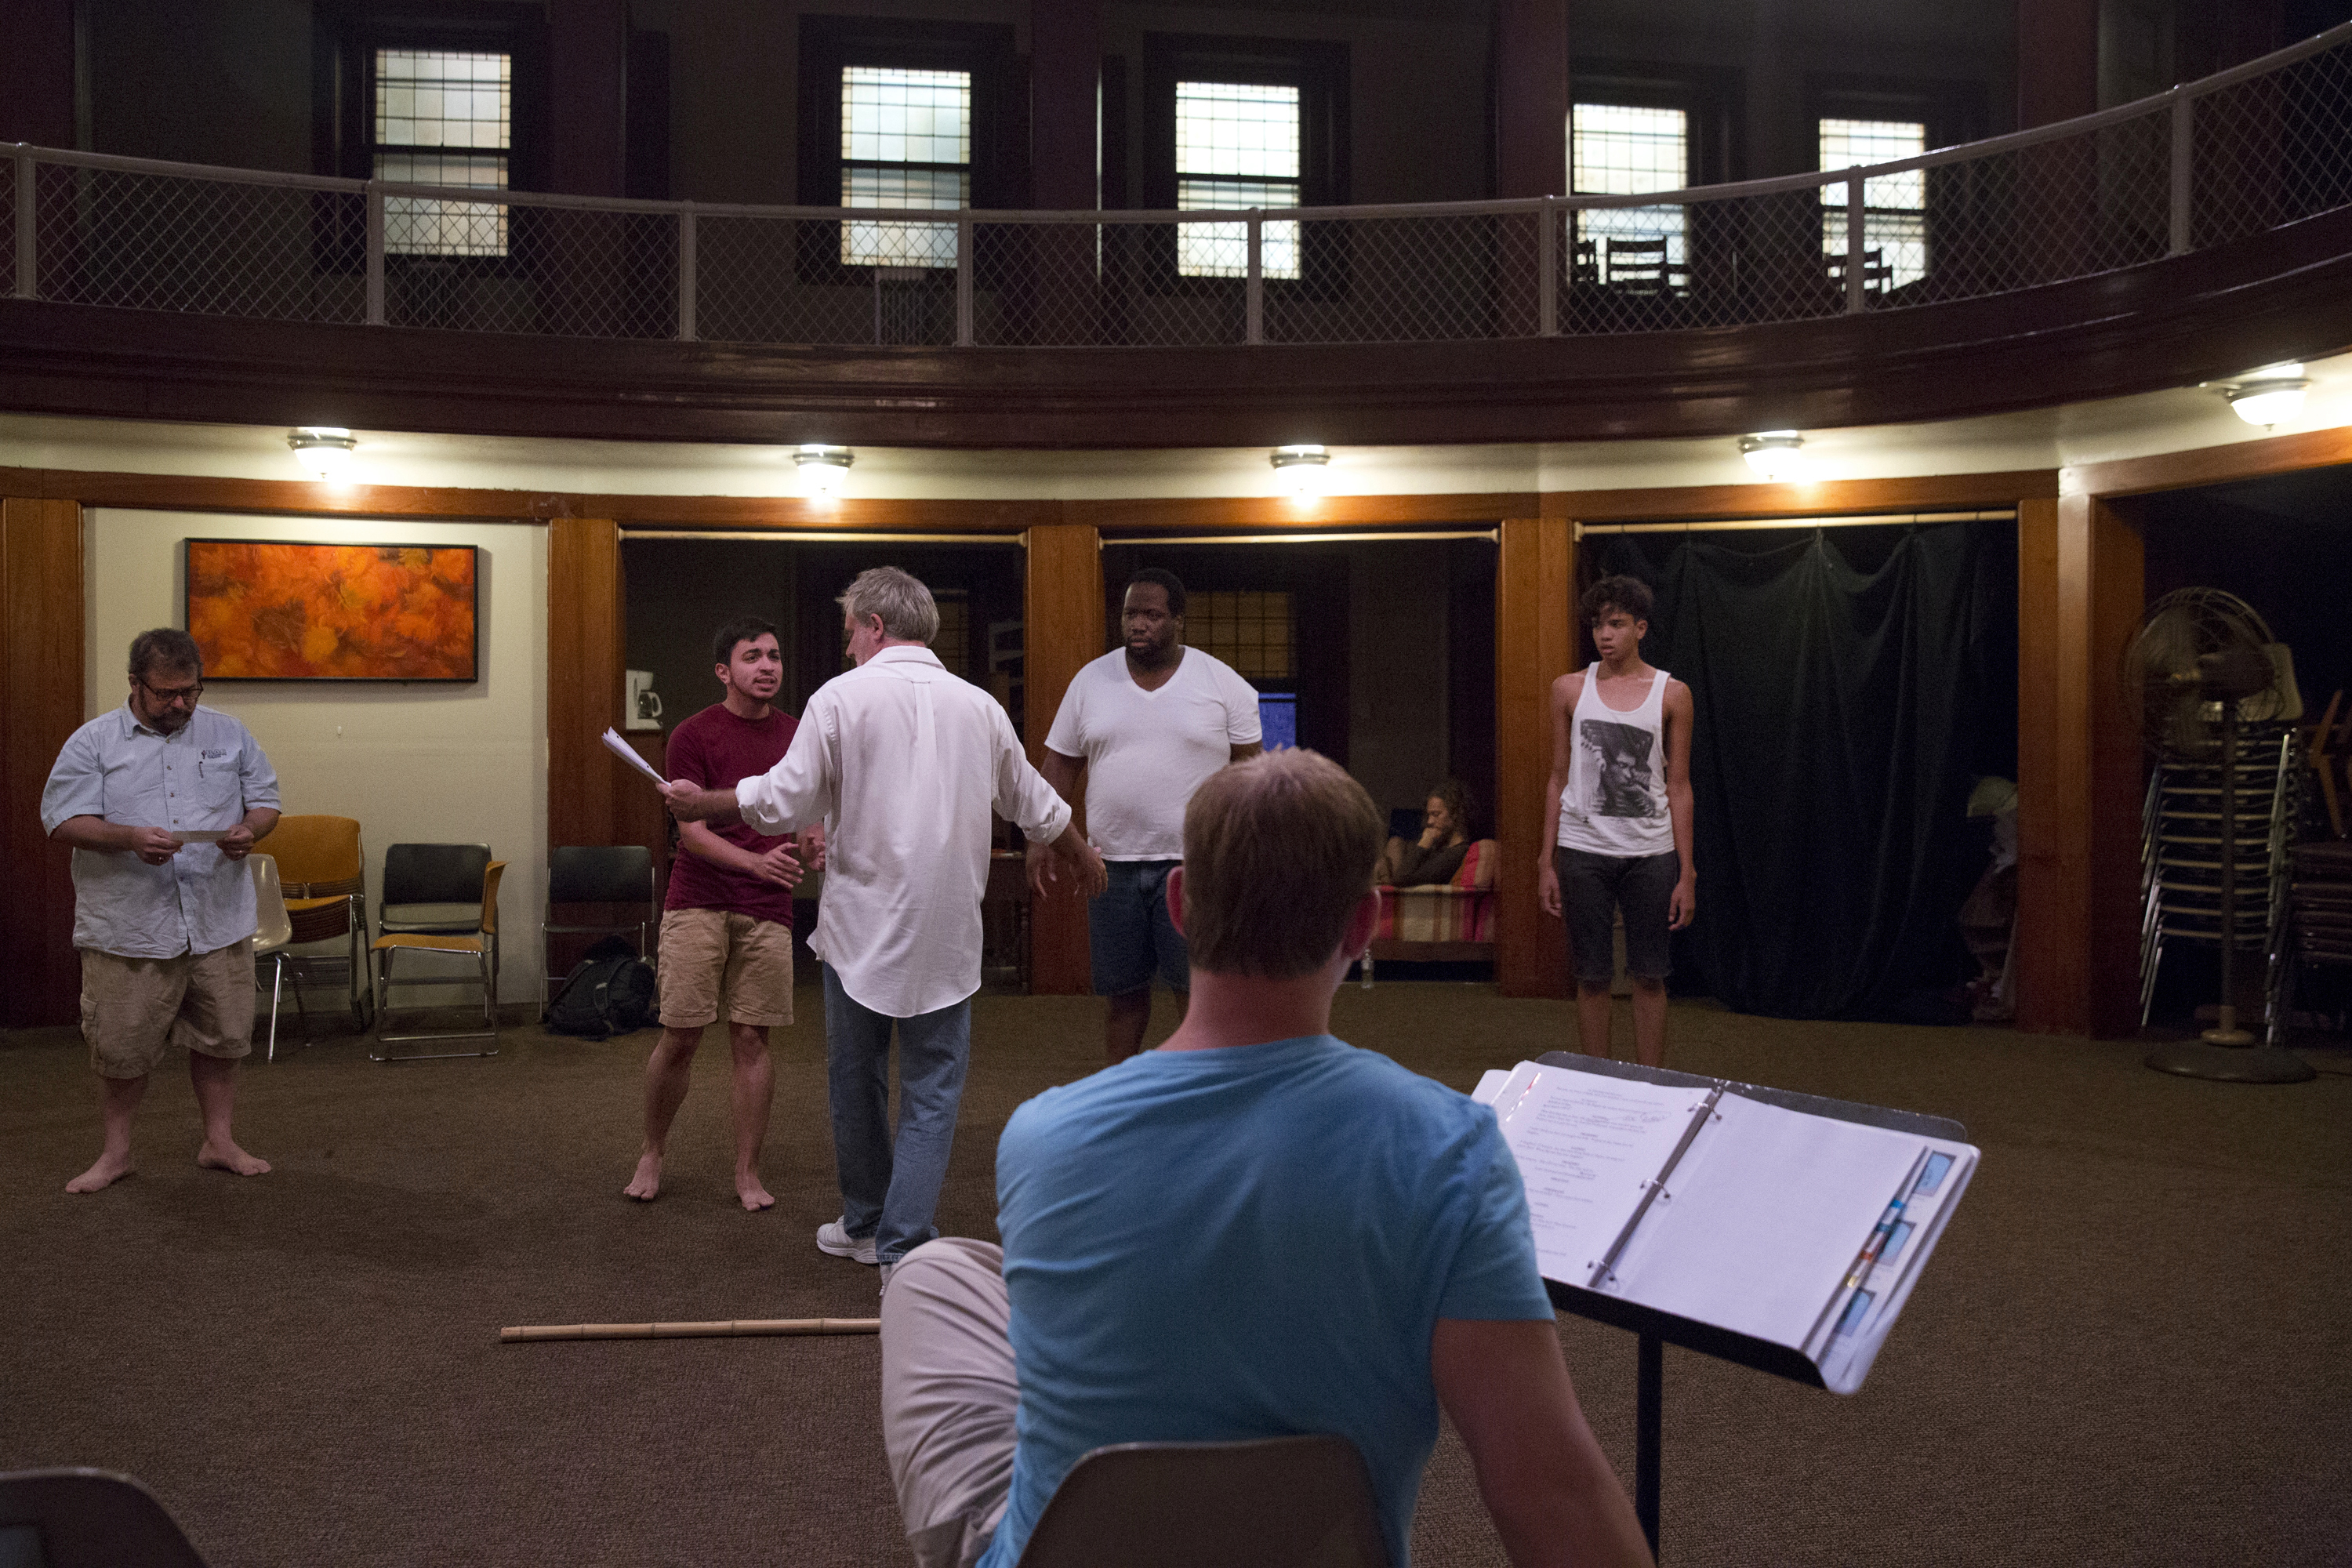 Younes rehearses a scene for The Tempest with his castmates at St. Mark's Evangelical Church in Baltimore.